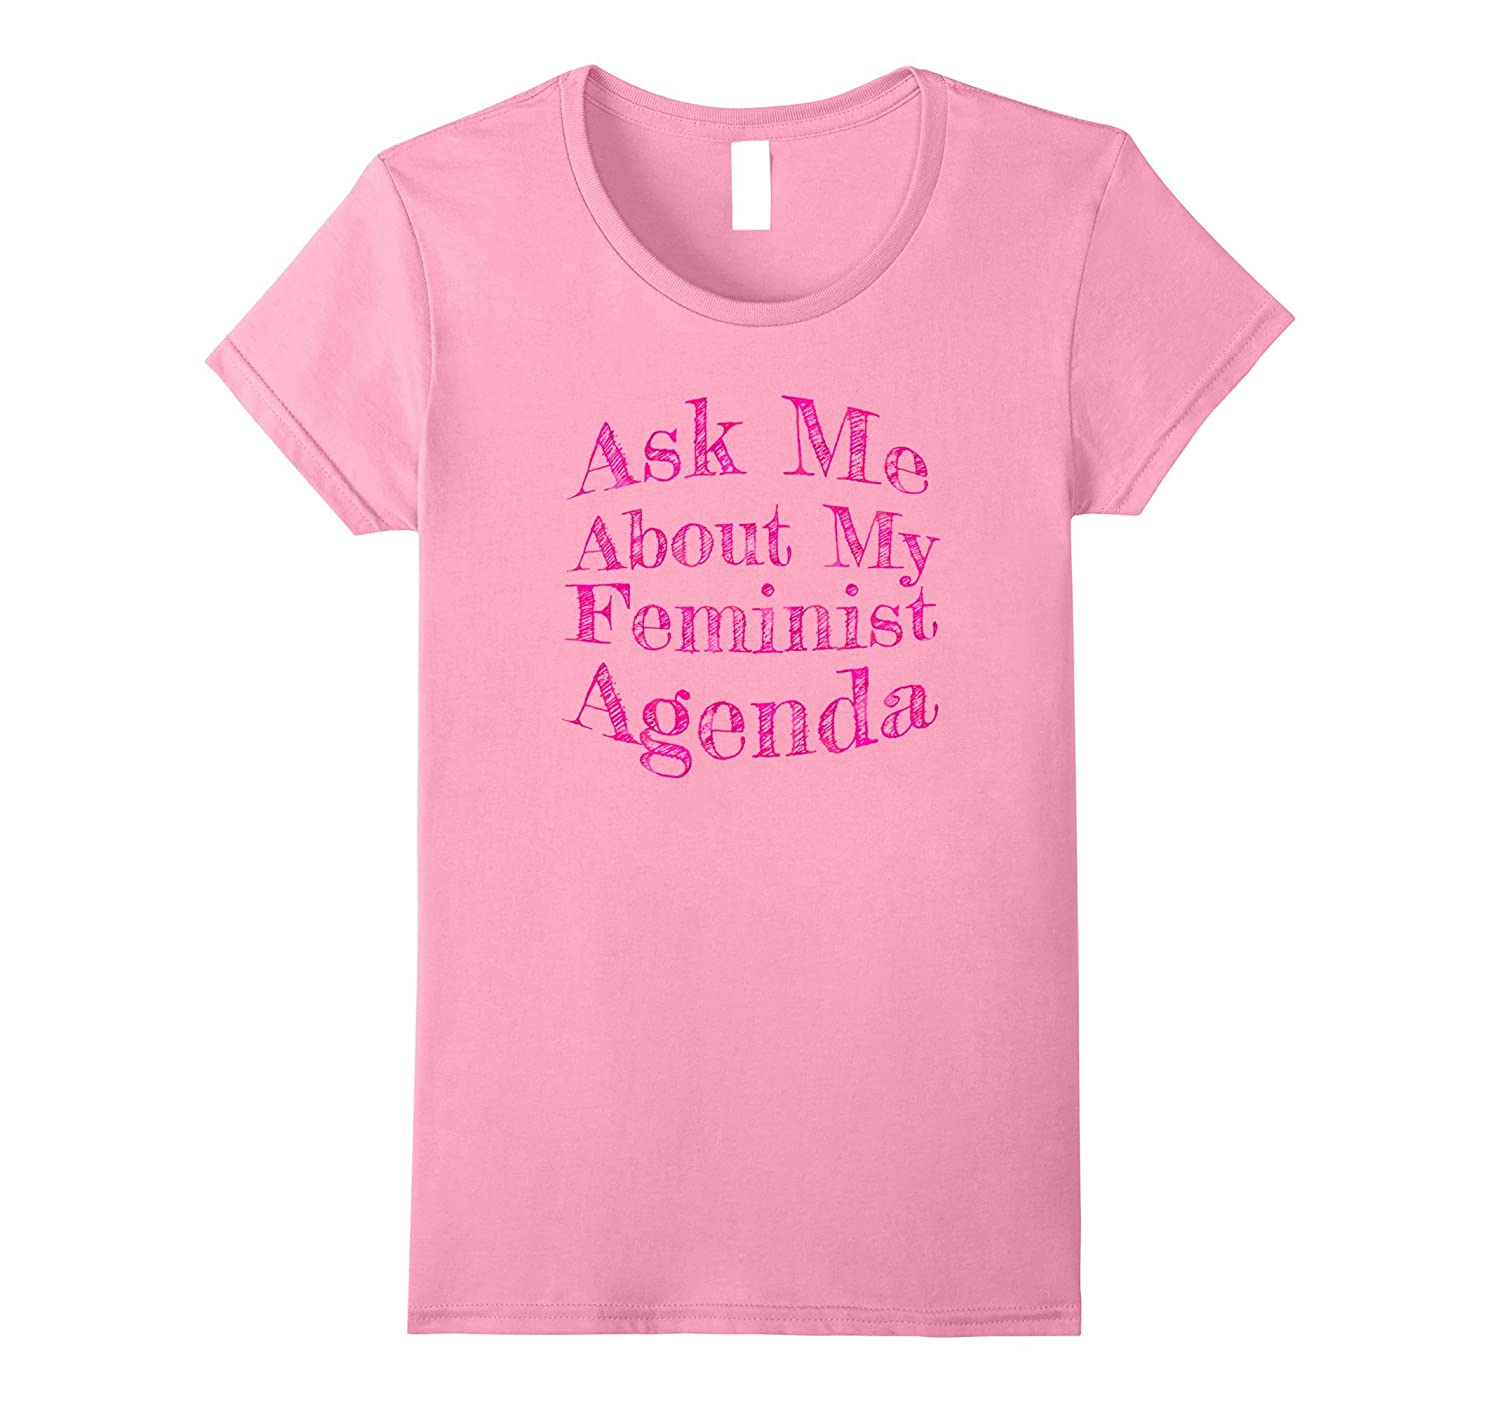 Ask Me About My Feminist Agenda Shirt  Pink Feminism Tee